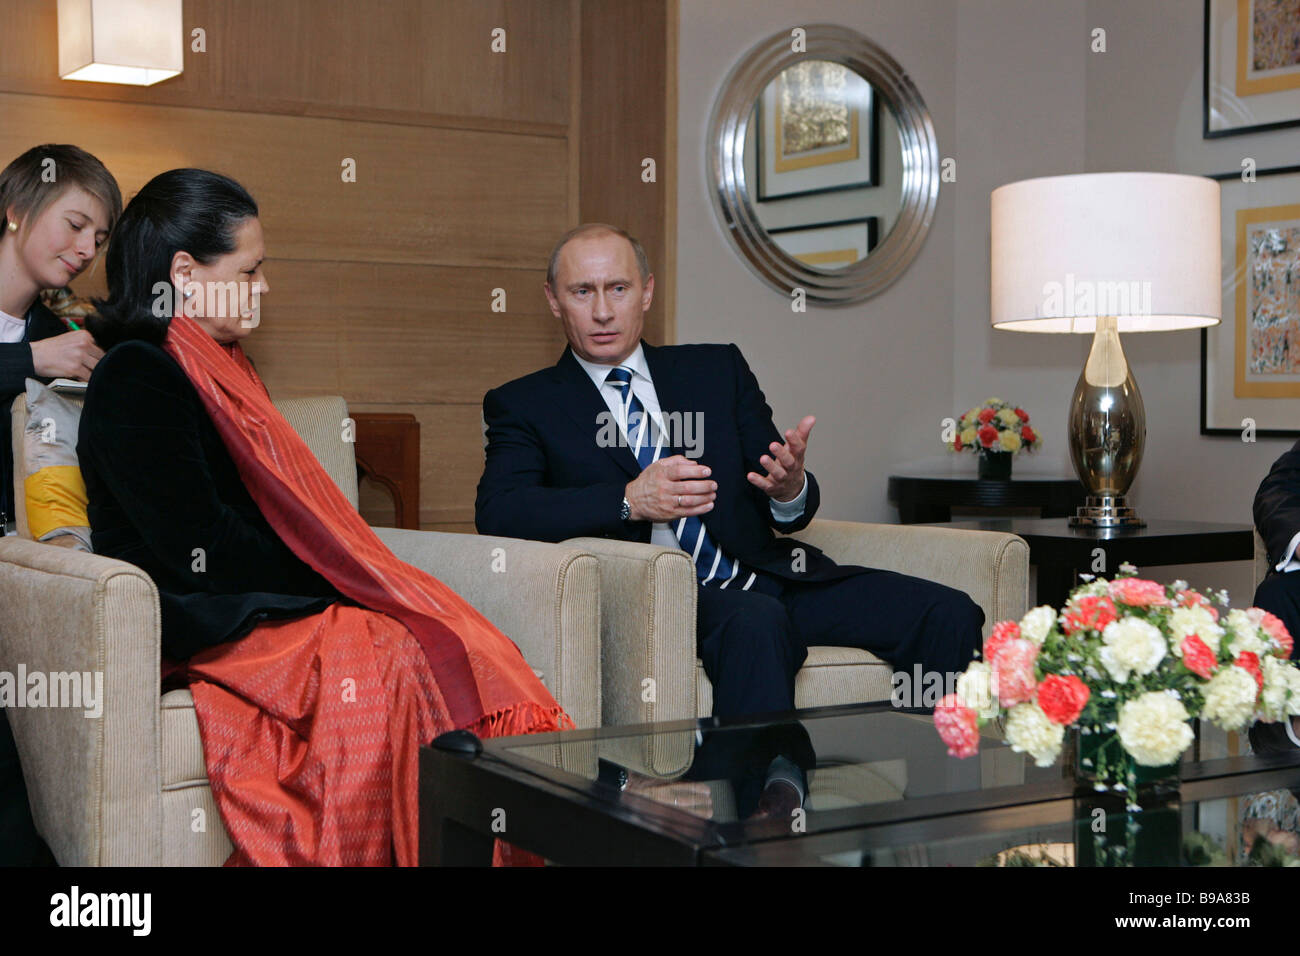 Leader of the Indian National Congress party Sonya Gandhi and Russian President Vladimir Putin meeting in the Maurya - Stock Image